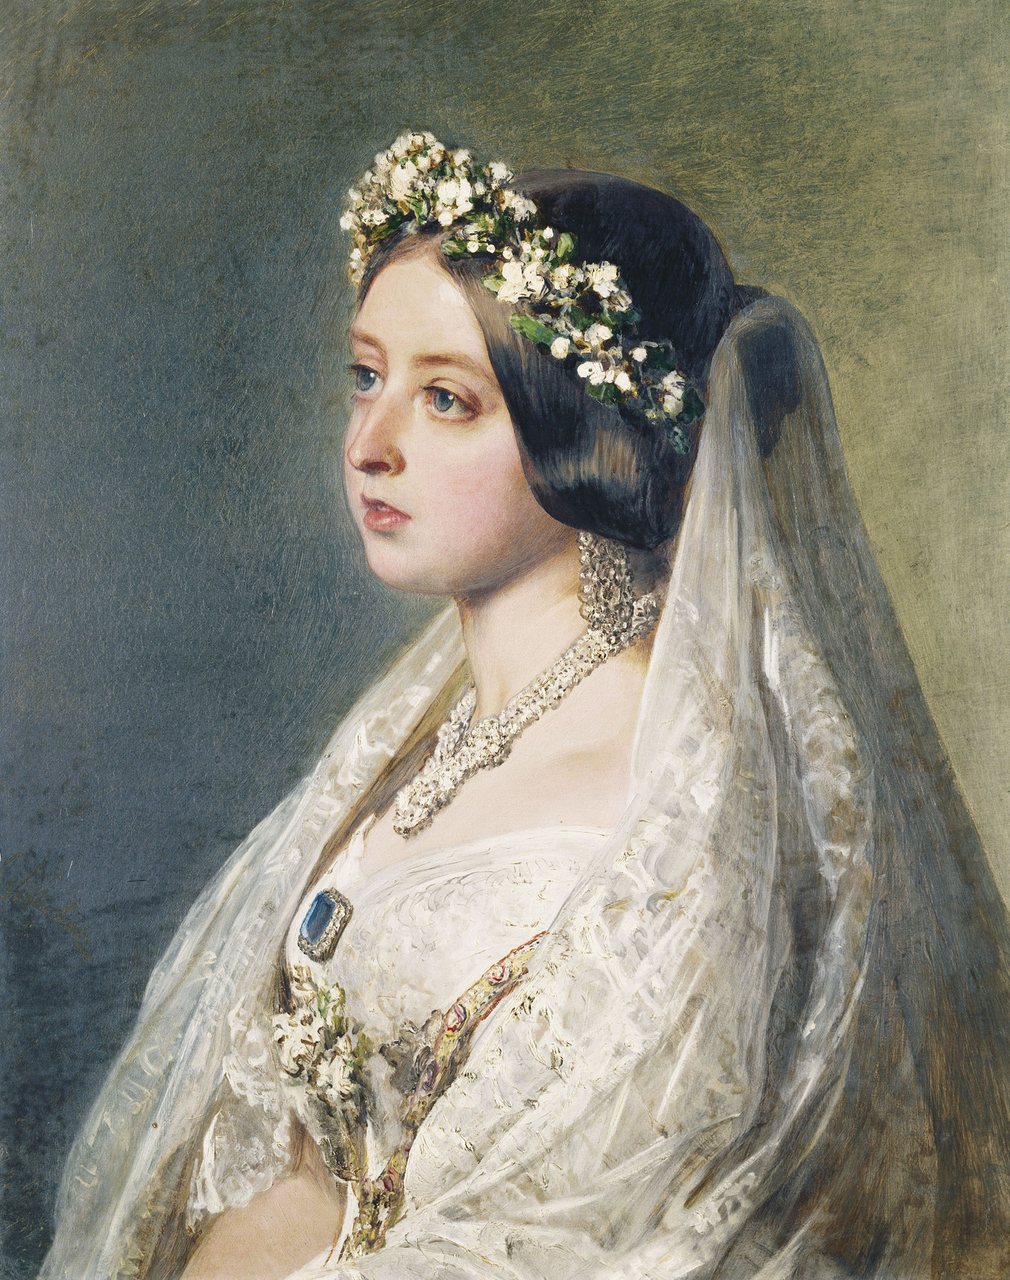 Winterhalter was born in the Black Forest where he was encouraged to draw at school. In 1818 he went to Freiburg to study under Karl Ludwig Schüler and then moved to Munich in 1823, where he attended the Academy and studied under Josef Stieler, a fashion